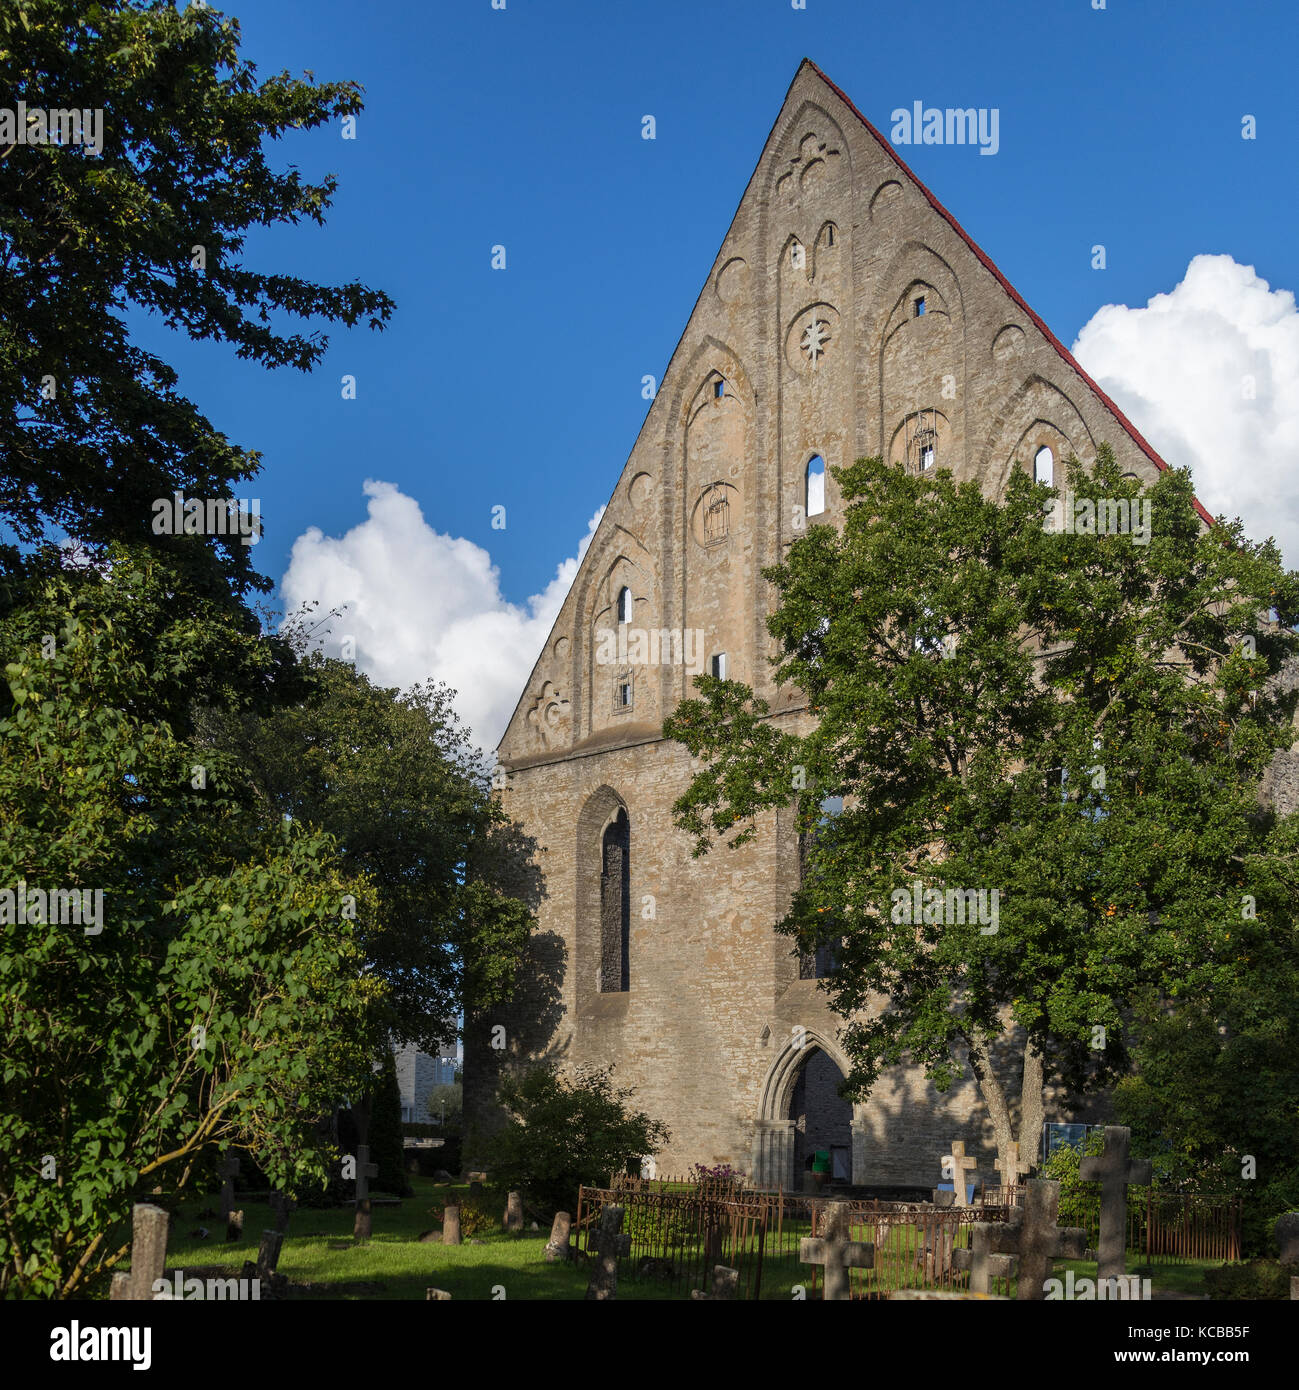 The Ruins of Pirita Convent. Pirita is a district of Tallinn in Estonia. The convent dates from 1417. It was was - Stock Image